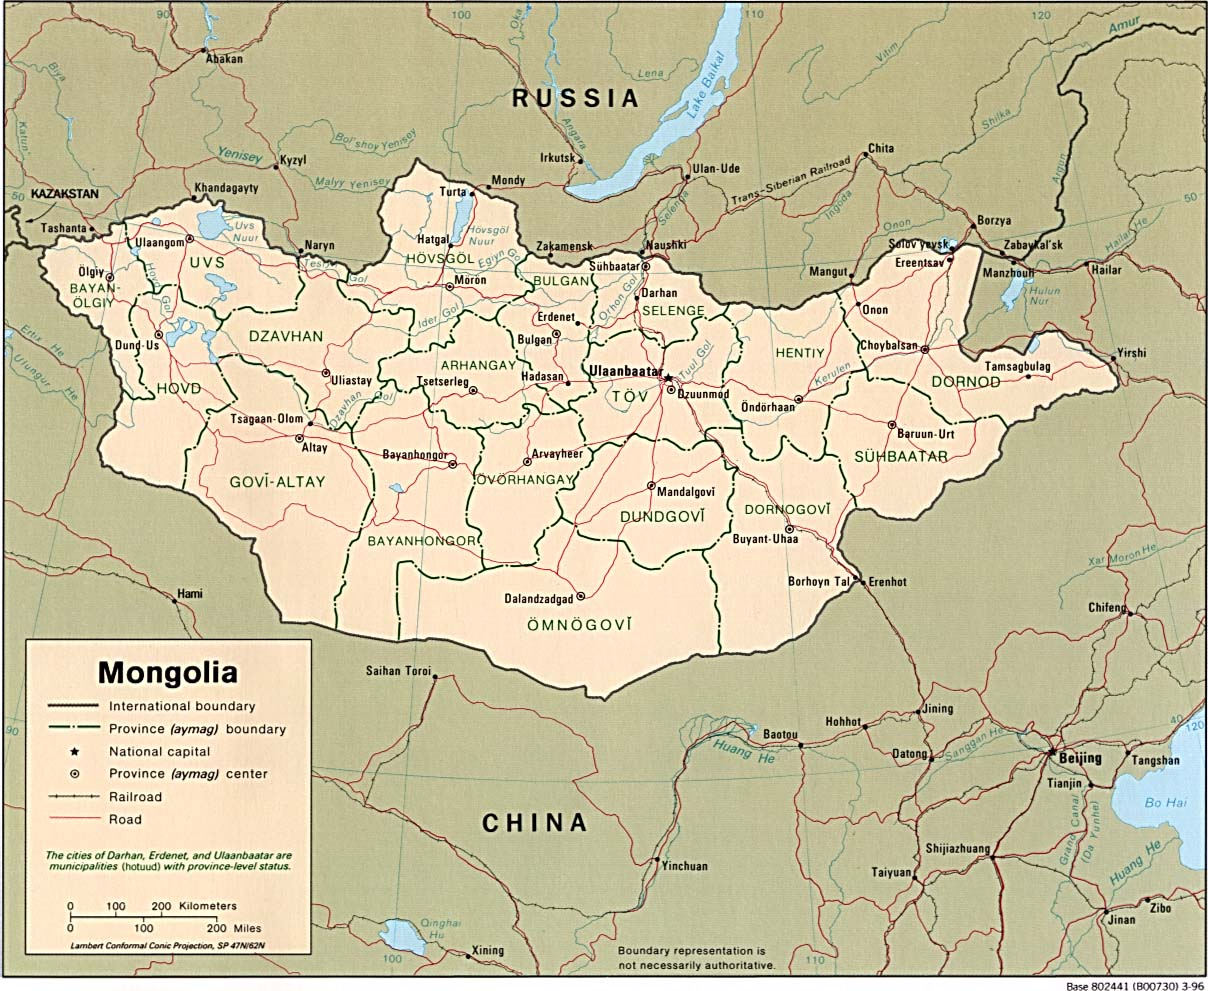 Mongolia General Information and Travel Information